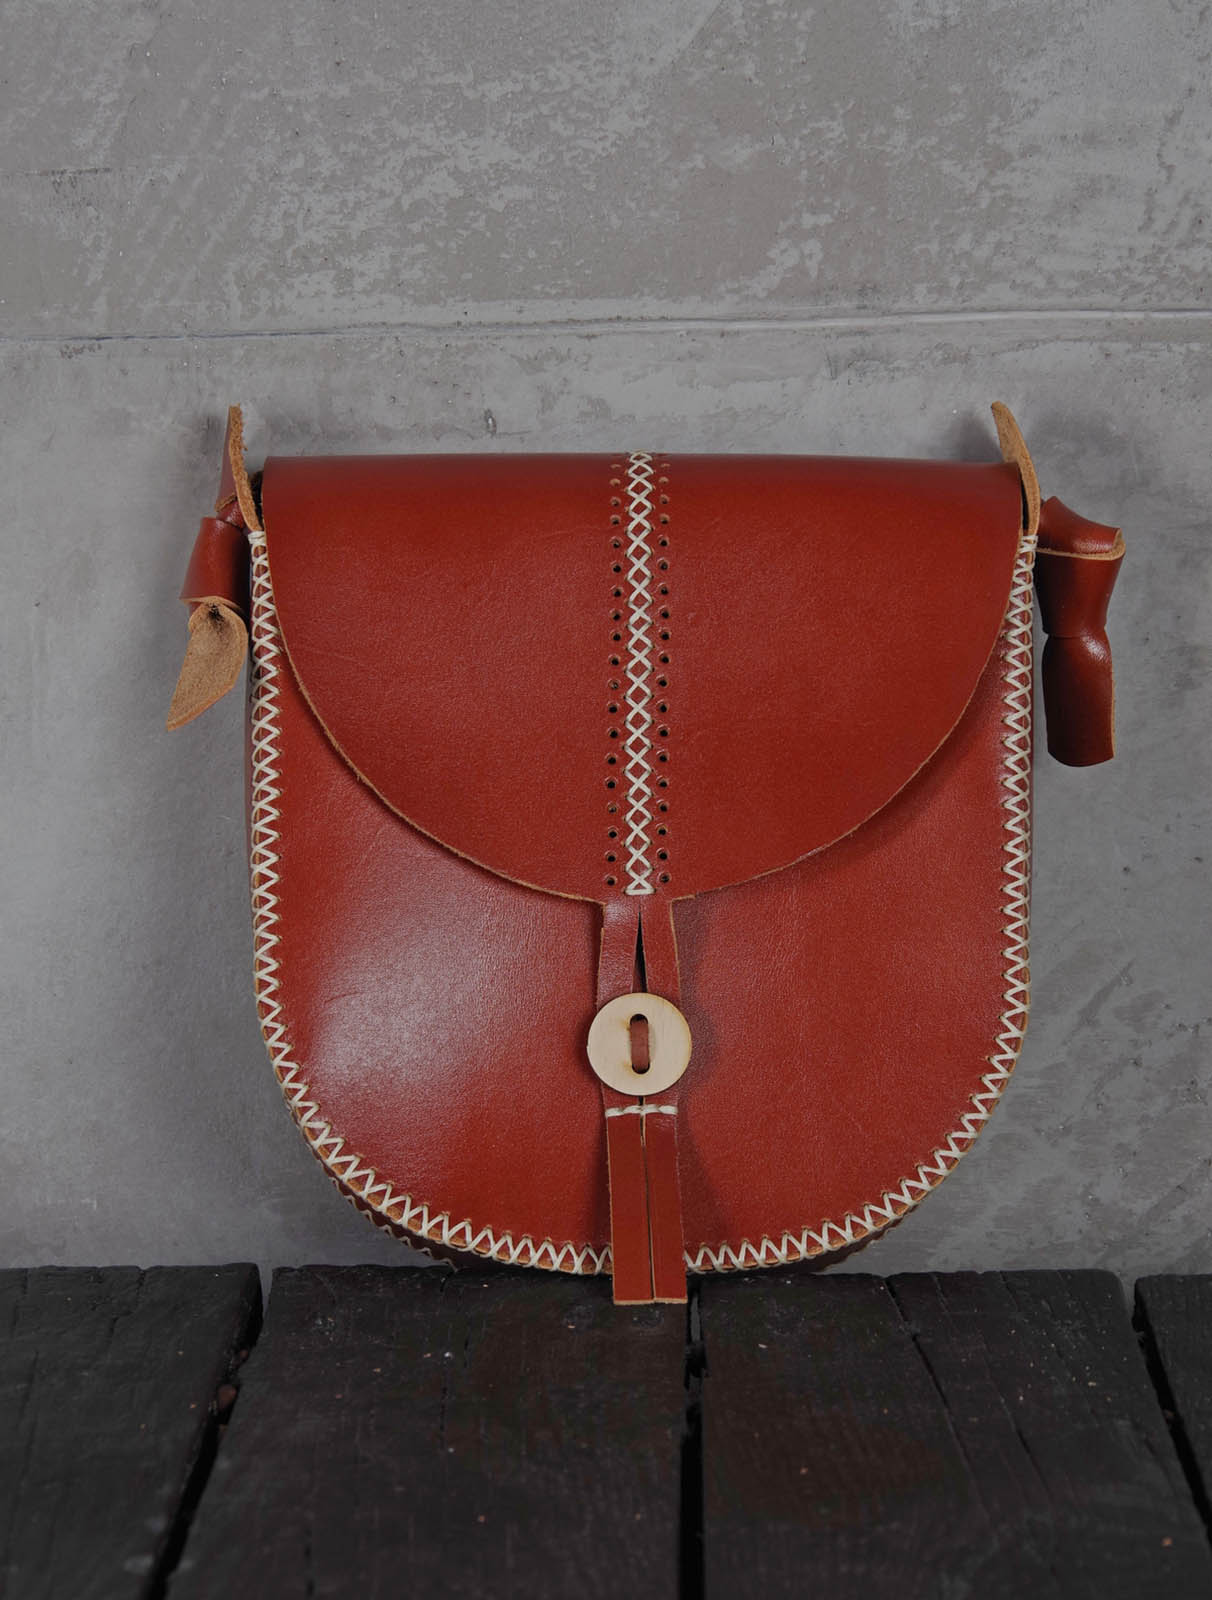 Leather bag with side stitching